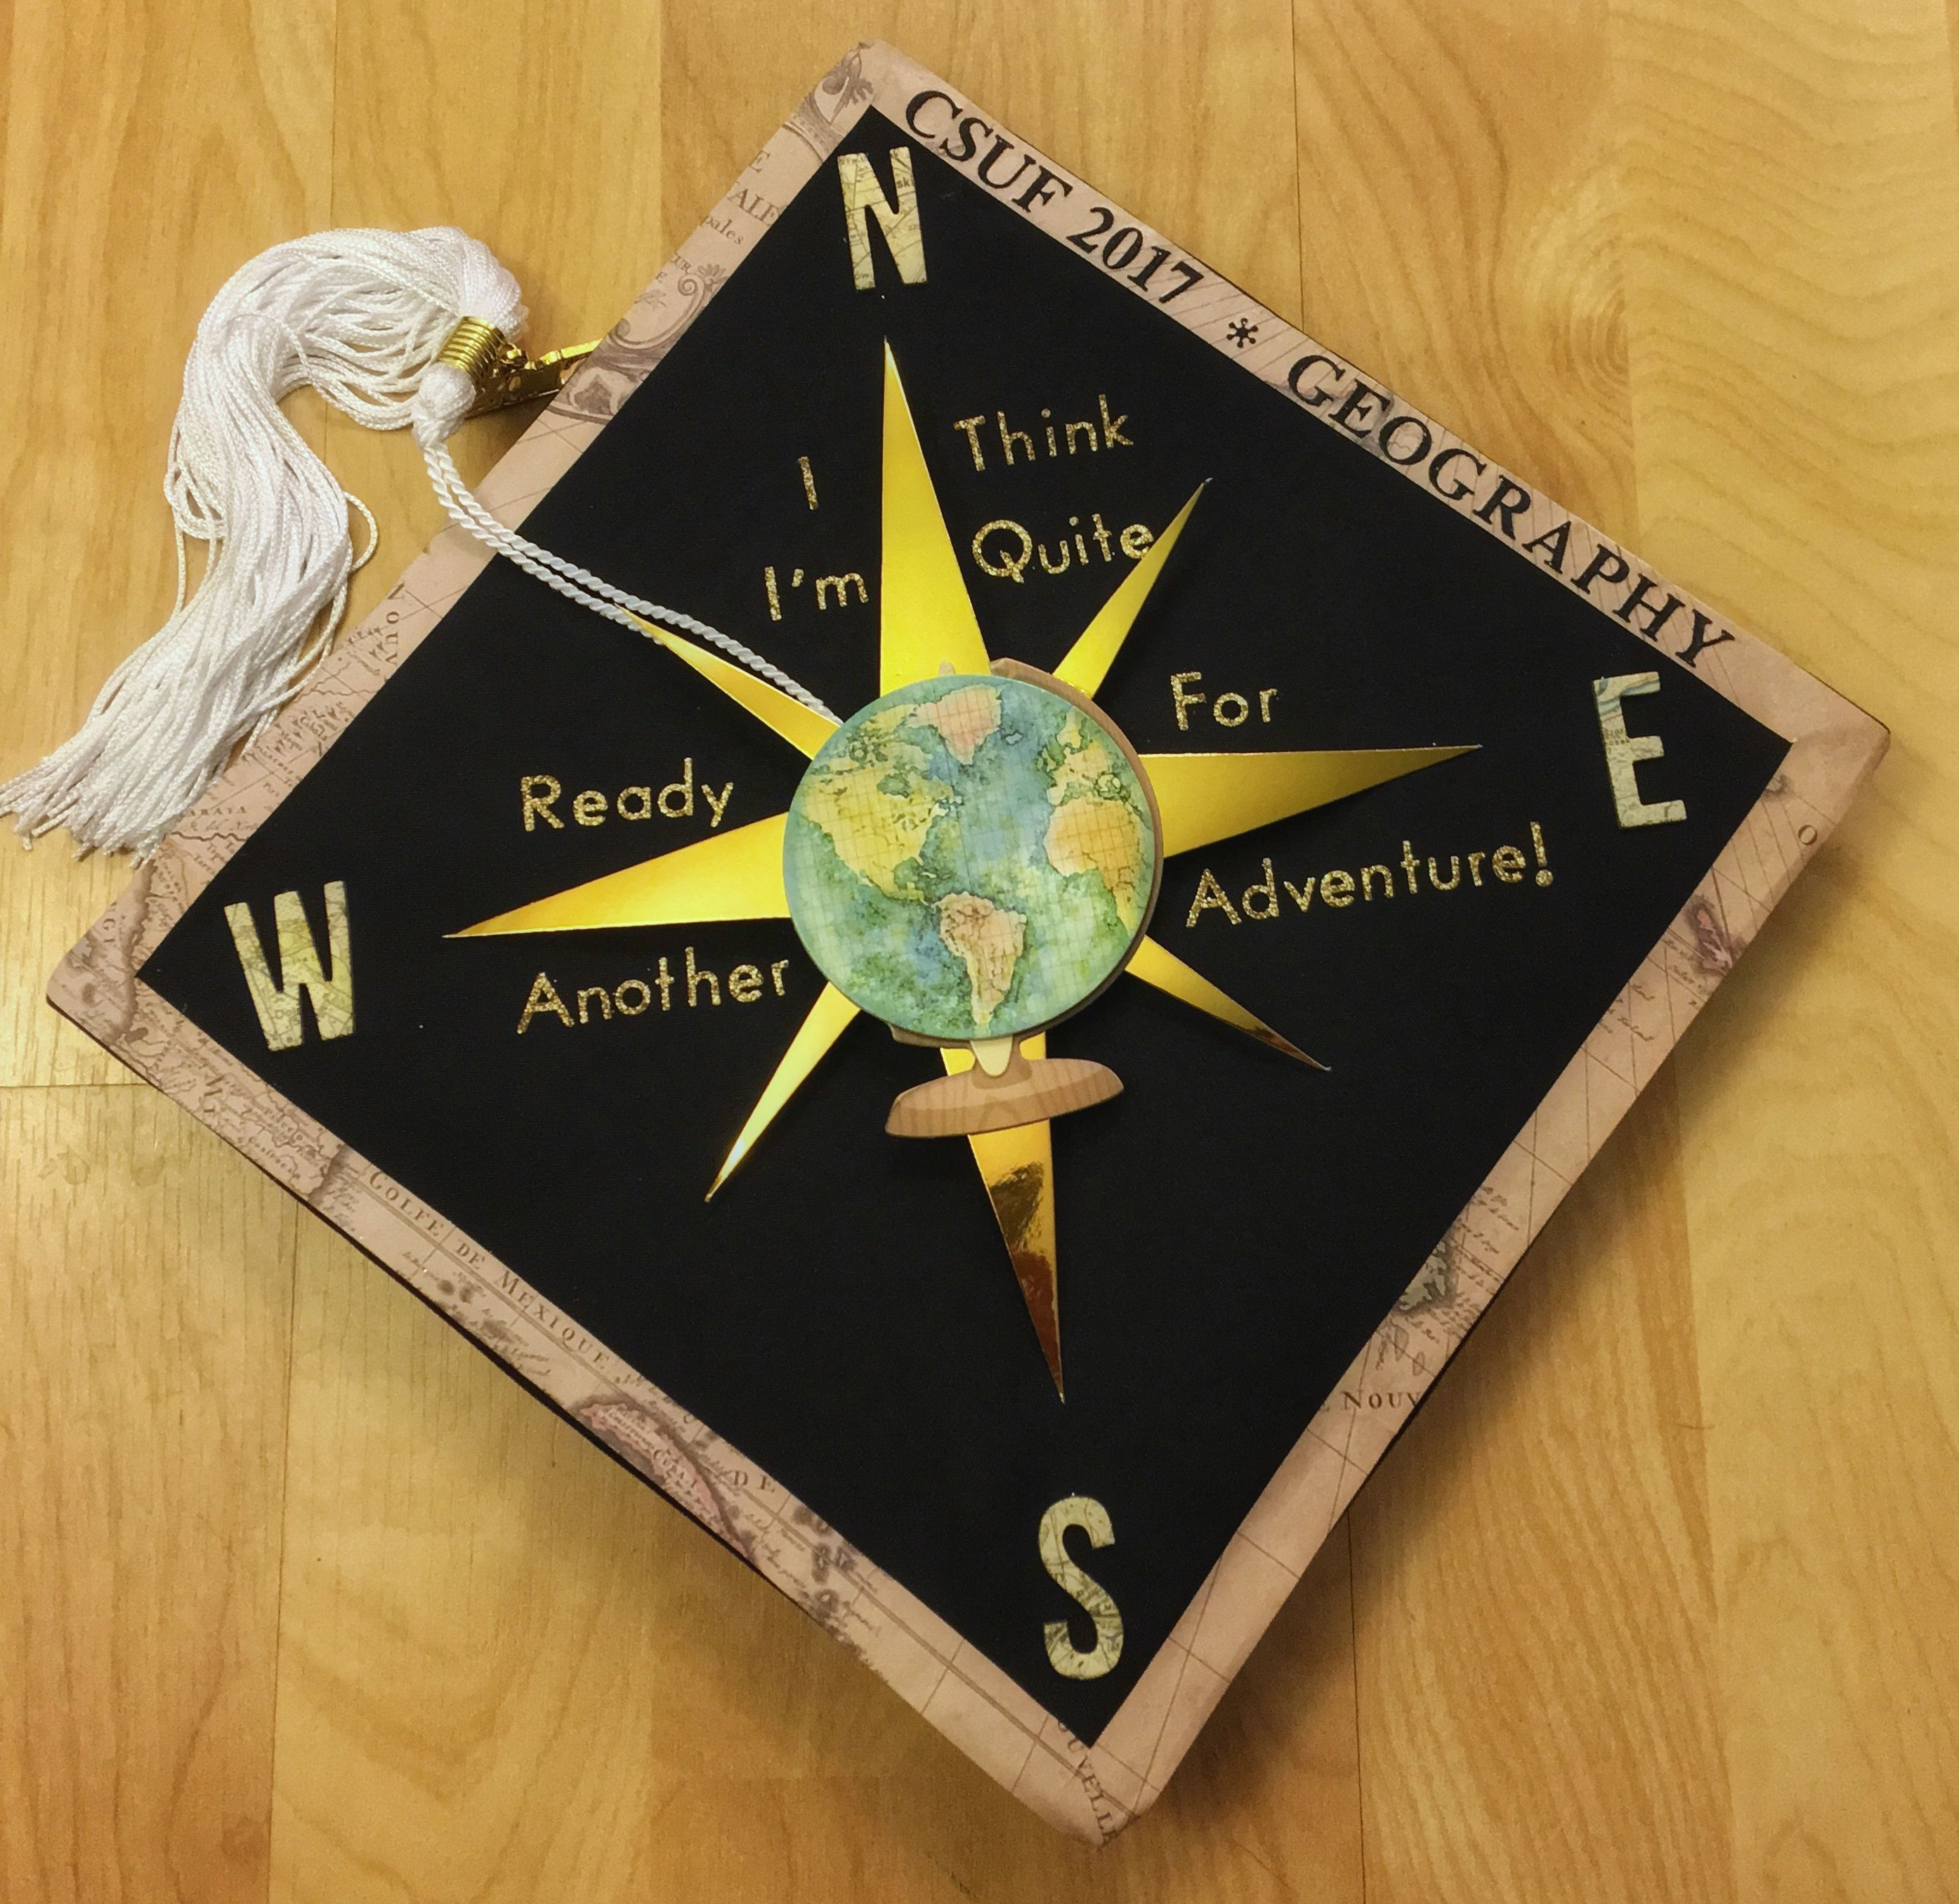 Decorated Grad Cap With A Compass Rose And Movie Bilbo S Quote From Lord Of The Rings Grad Graduation Cap Designs Grad Cap Graduation Cap Decoration